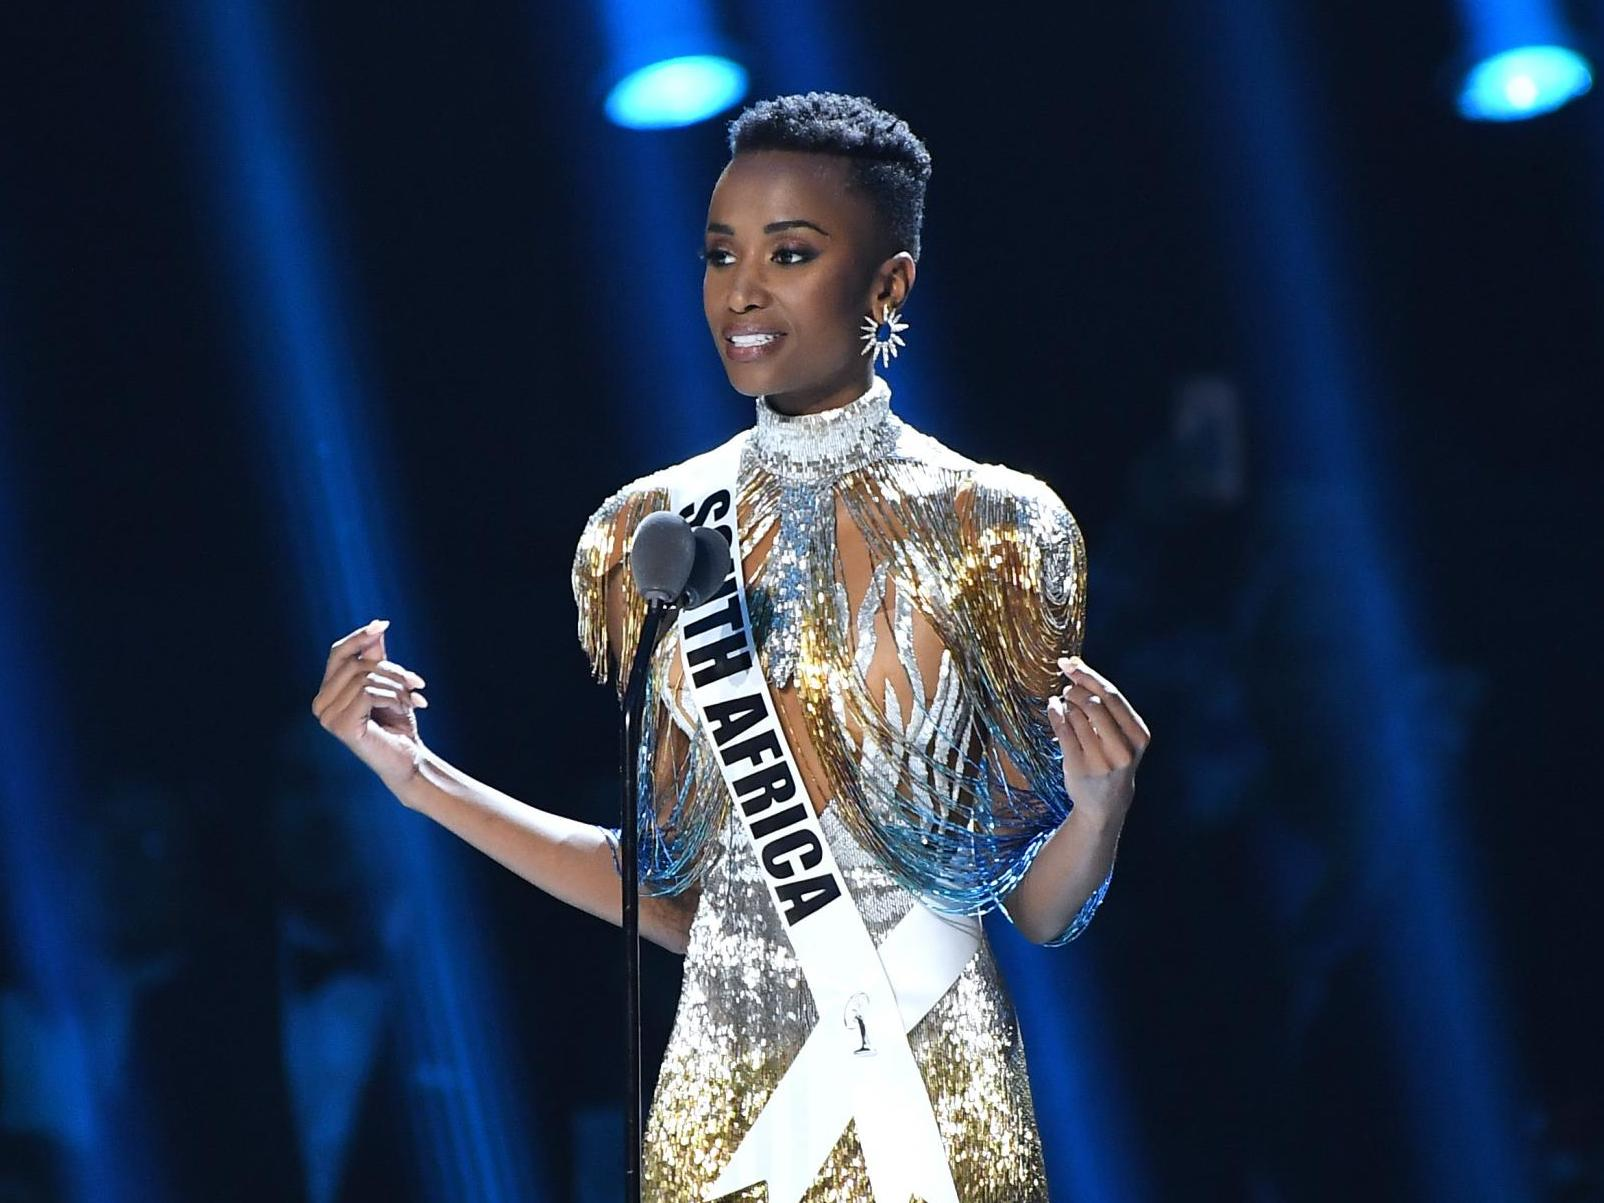 Miss Universe winner says her skin and hair were 'never considered beautiful' when growing up